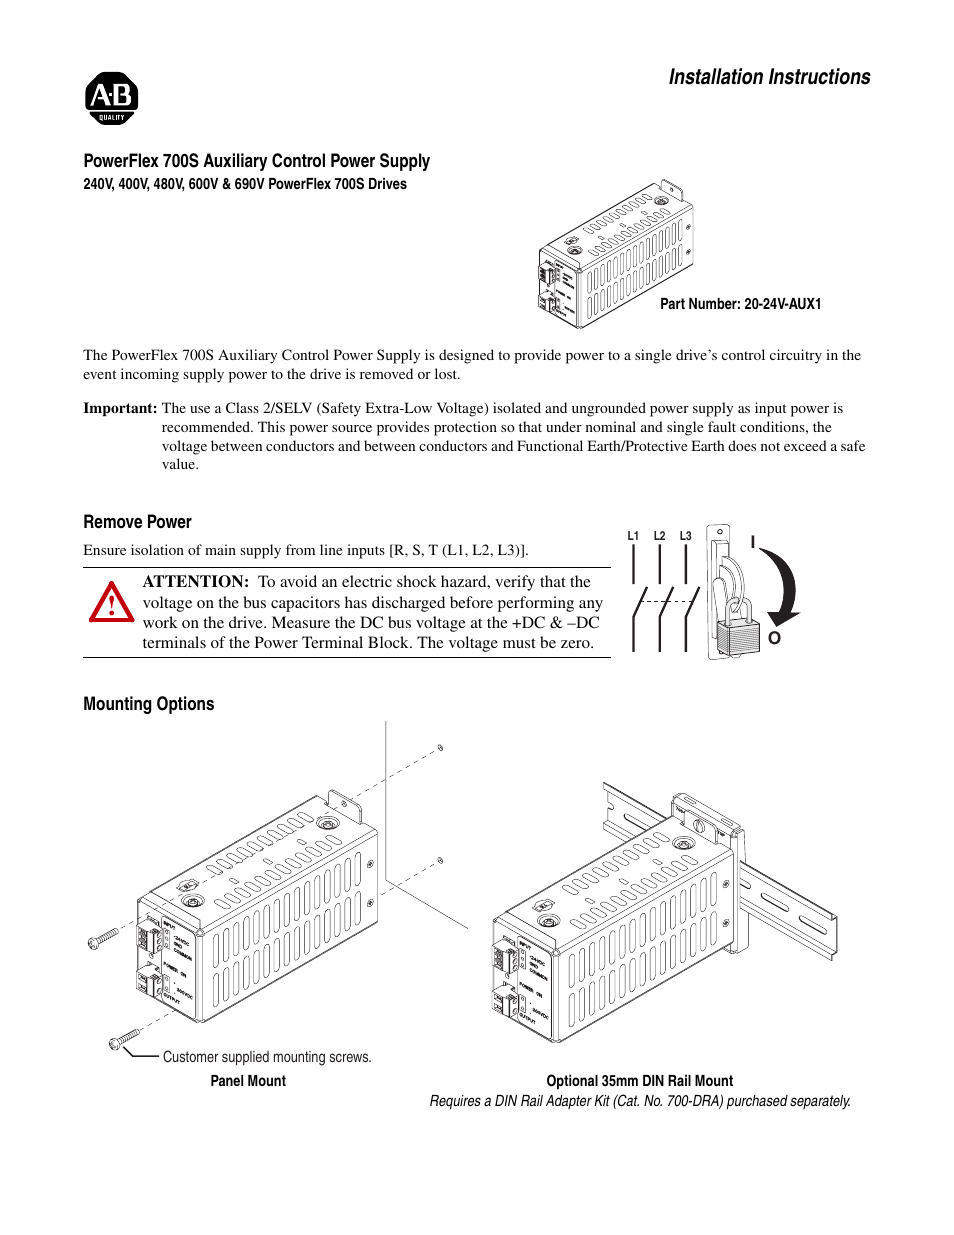 Rockwell Automation 20d Powerflex 700s Auxiliary Control Power Ungrounded Cord Wiring Diagram Supply User Manual 4 Pages